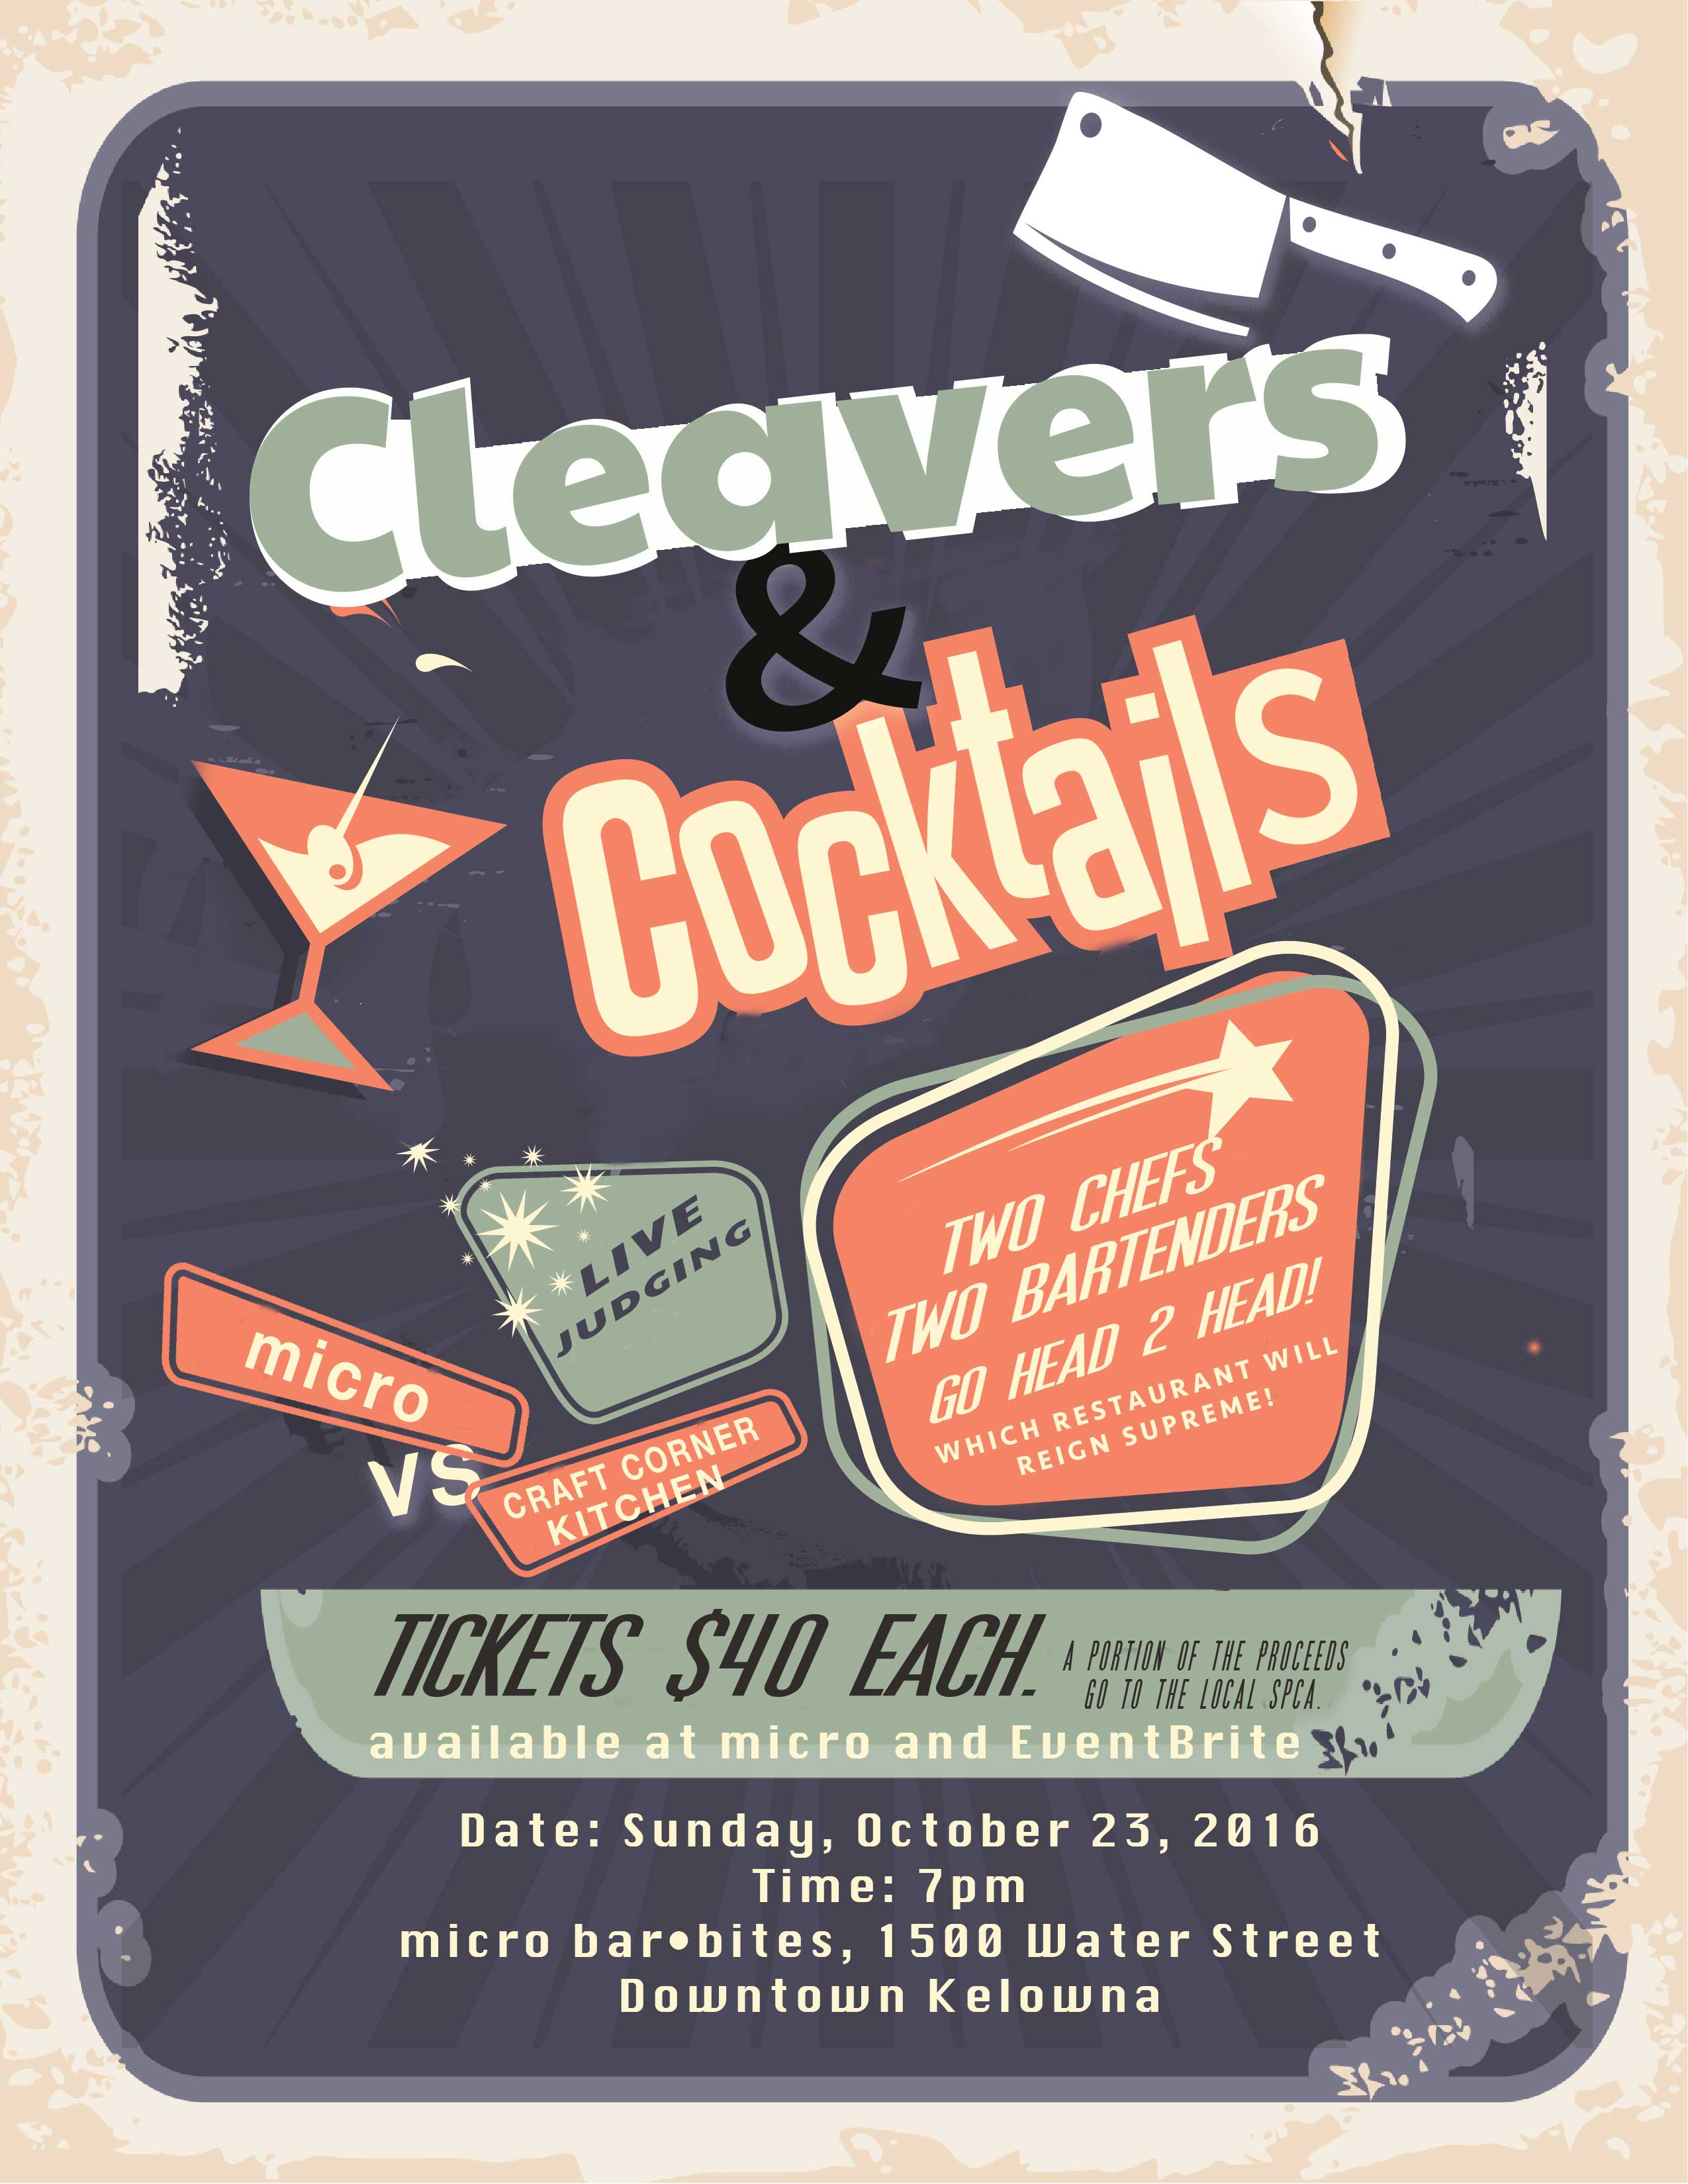 cocktails-and-cleavers-oct-2016-poster